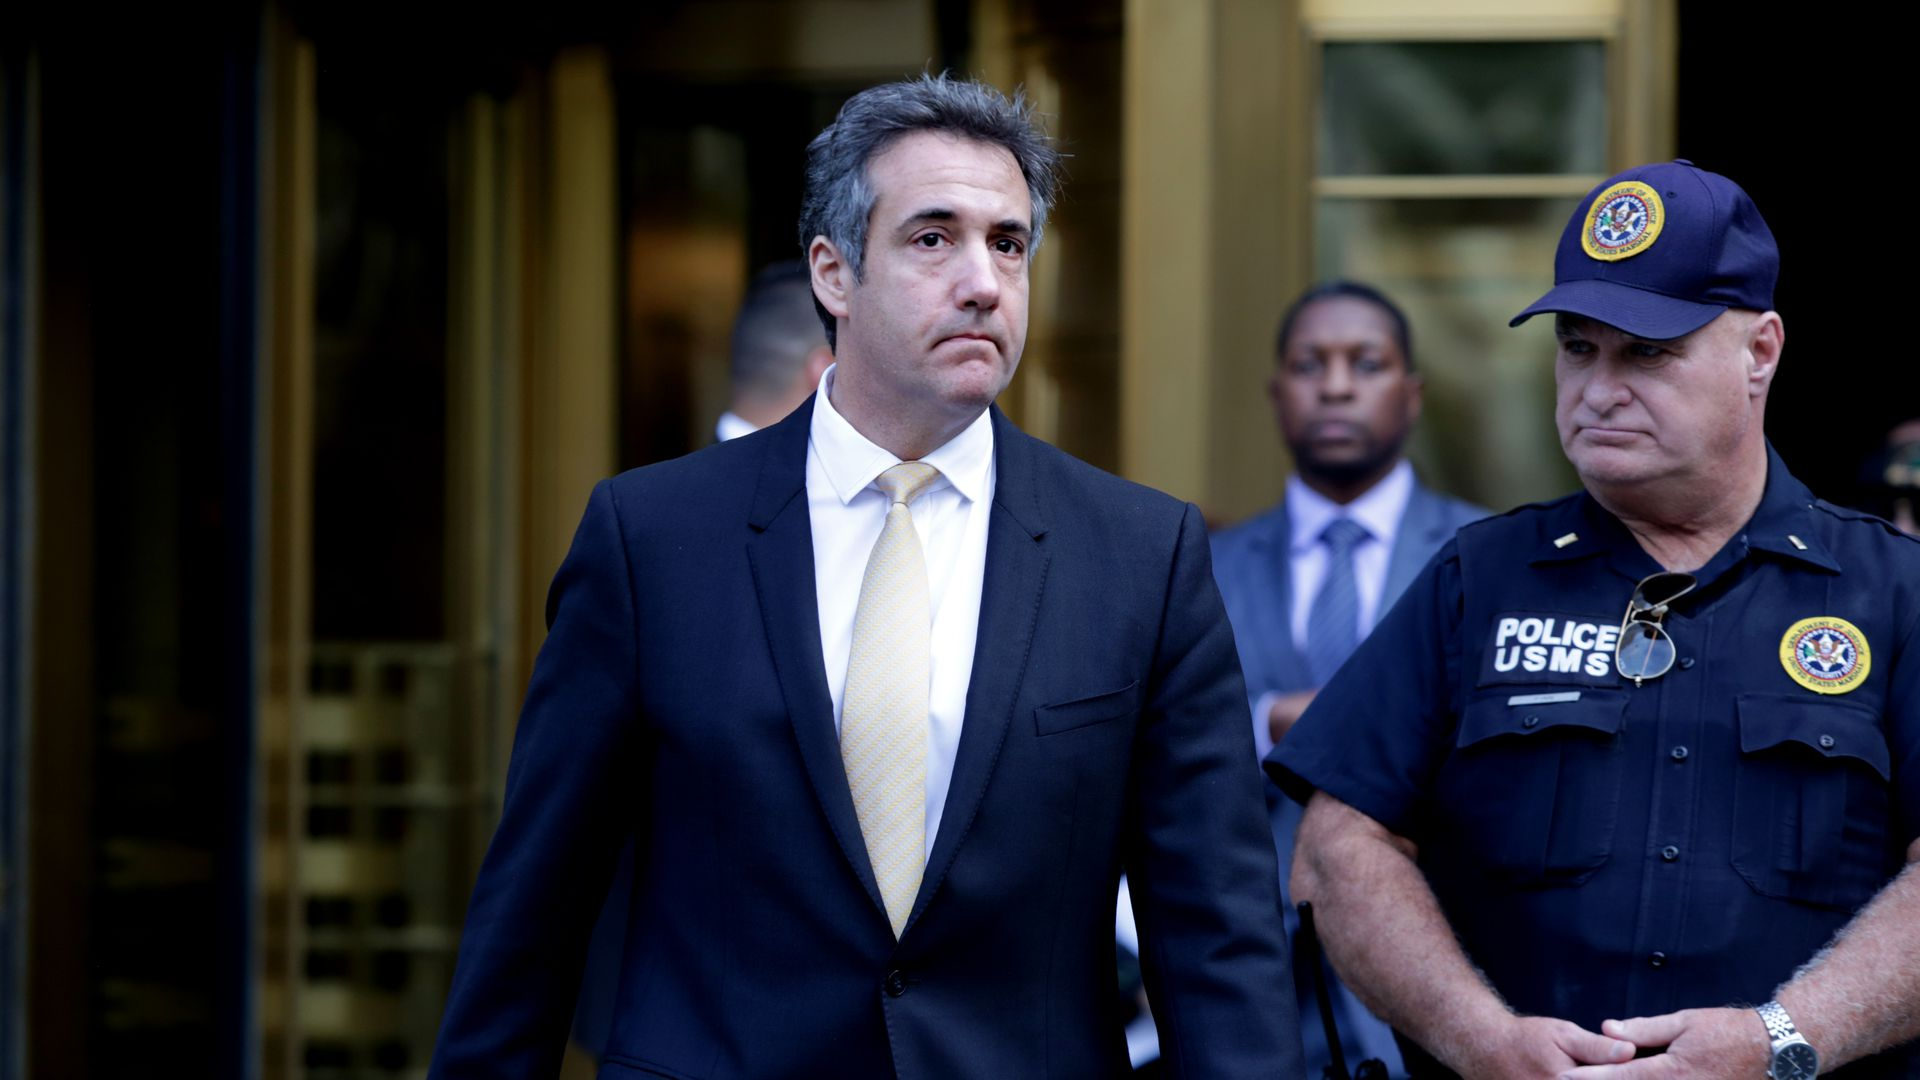 Michael Cohen, former lawyer to President Donald Trump, exits the Federal Courthouse in New York City on Tuesday. Photo: Yana Paskova/Getty Images